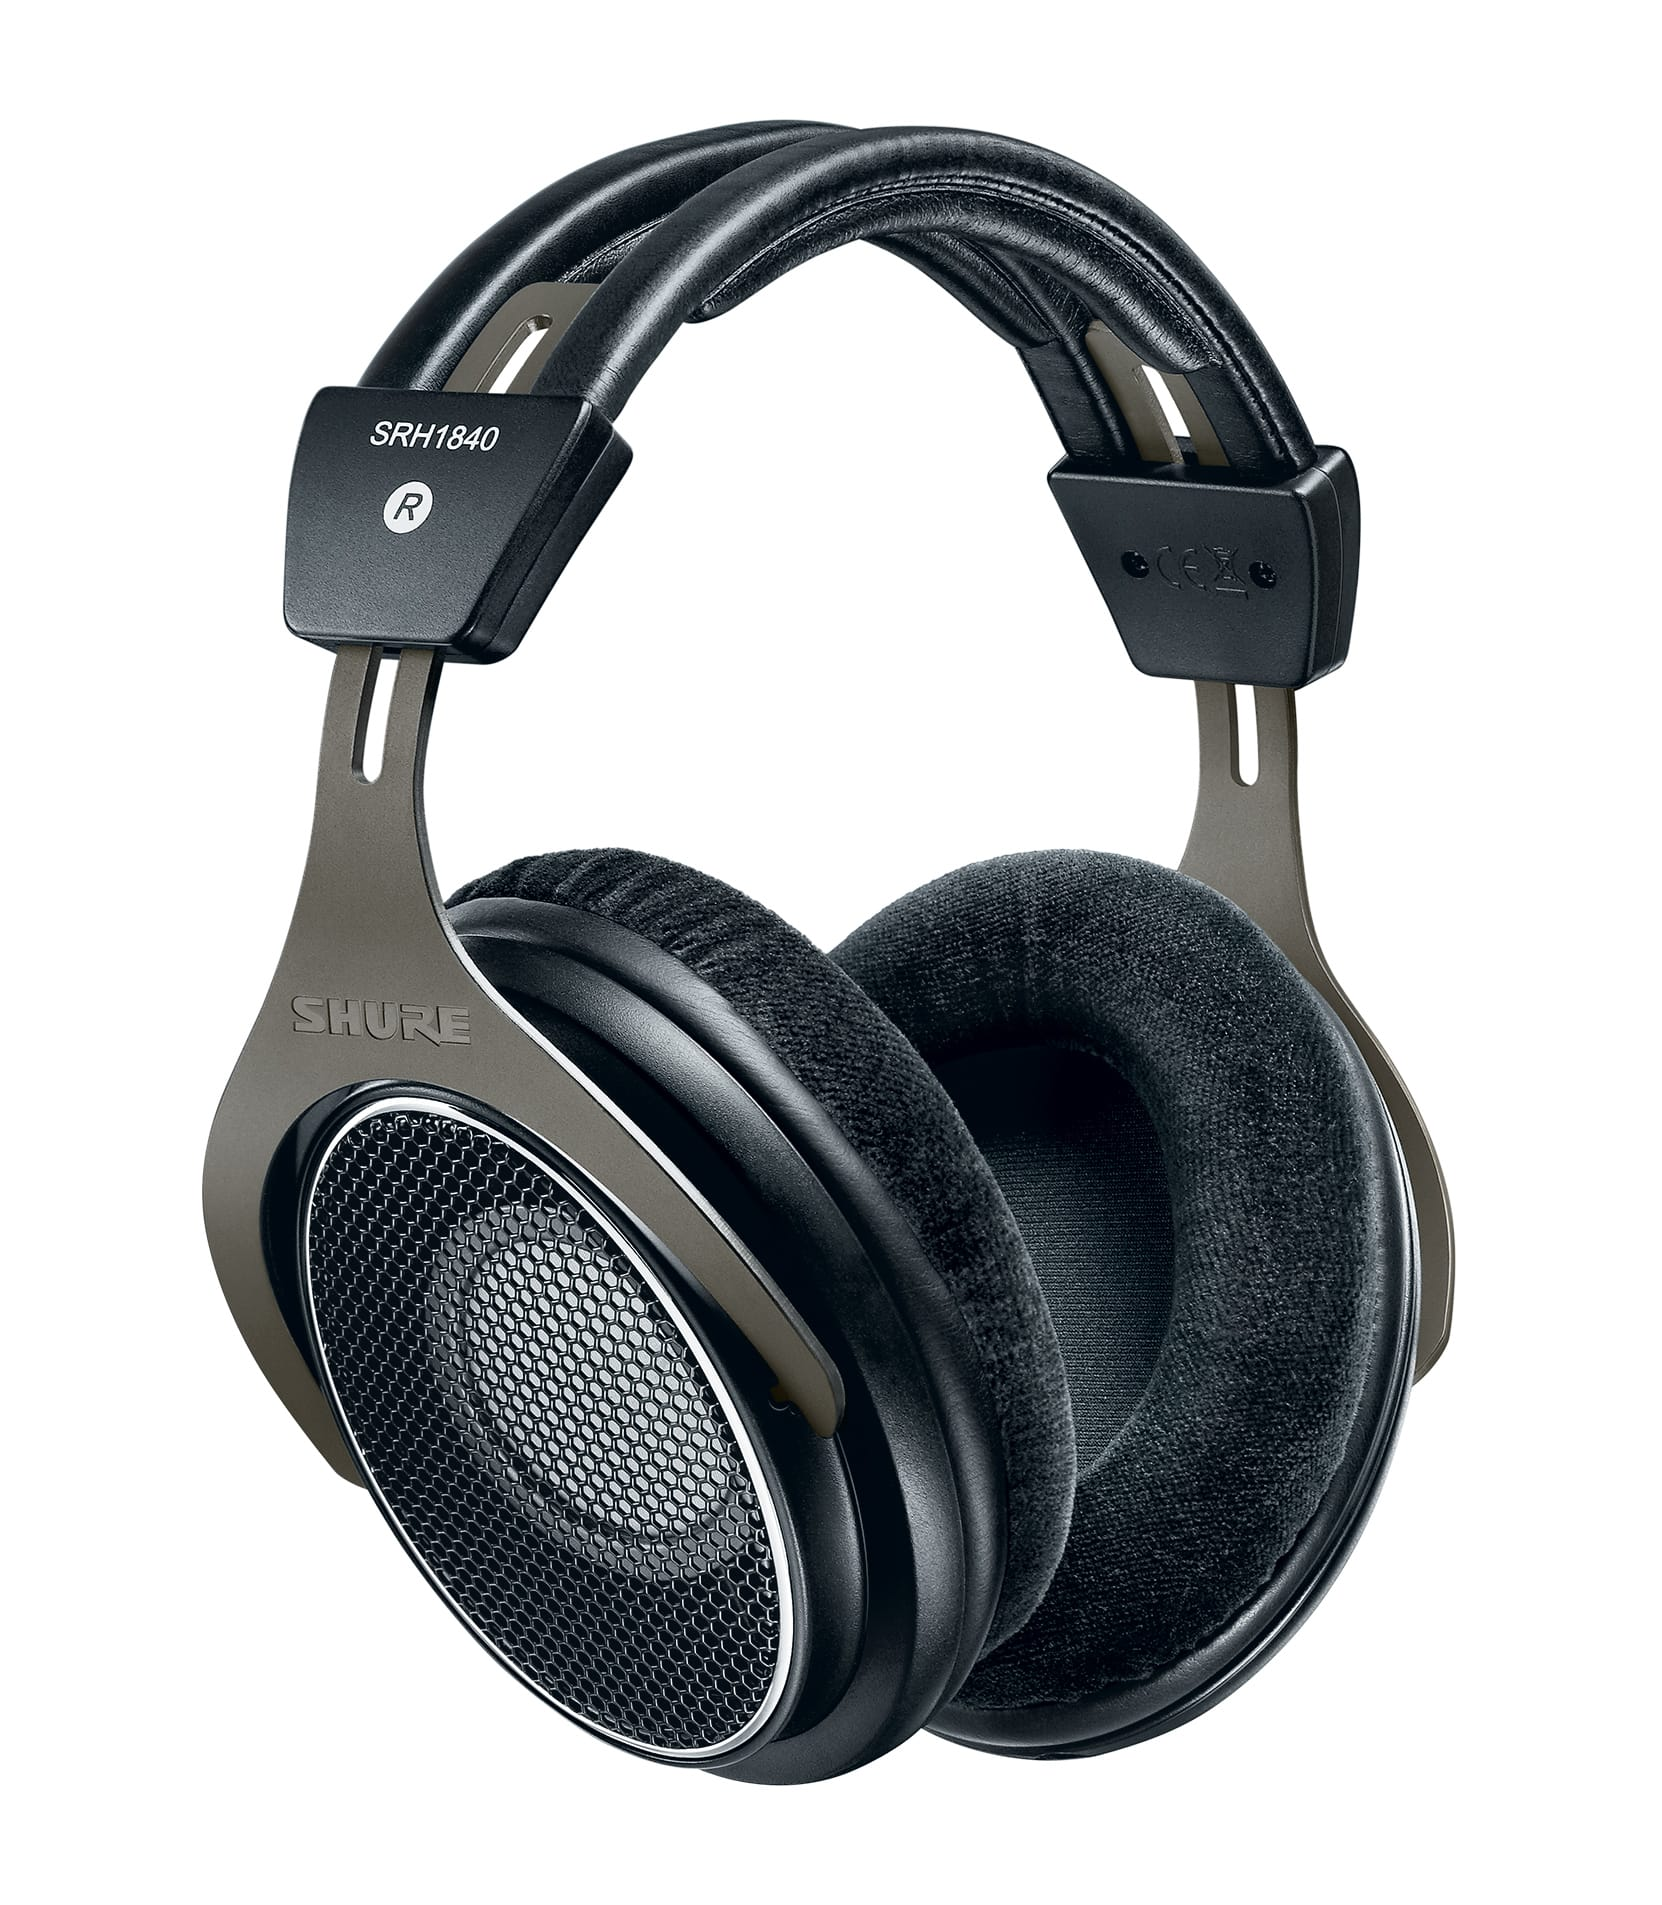 Melody House Musical Instruments Store - SRH1840 Professional Open Back Headphones